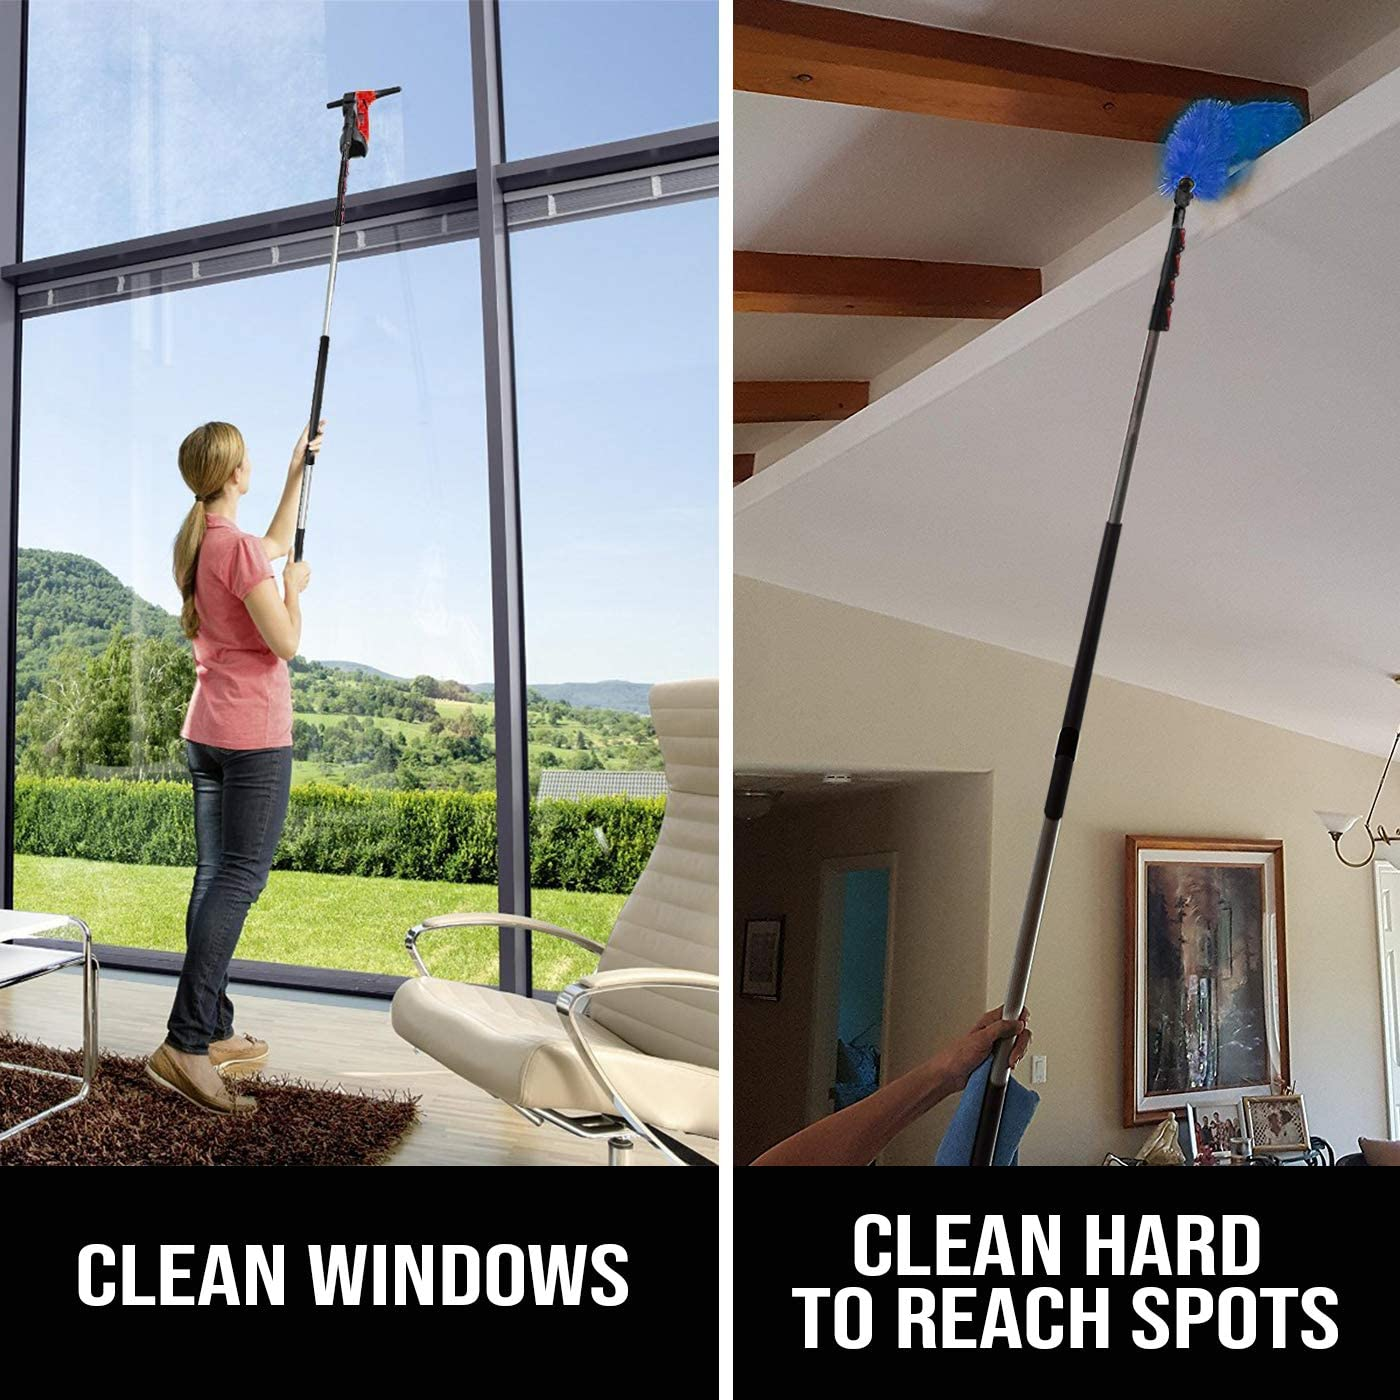 6 - 24 Foot Telescopic Extension Pole - Multi functional pole, Paint Roller, Light Bulb Changer, Duster Pole, Antenna pole, Hanging Lights, Window and ...